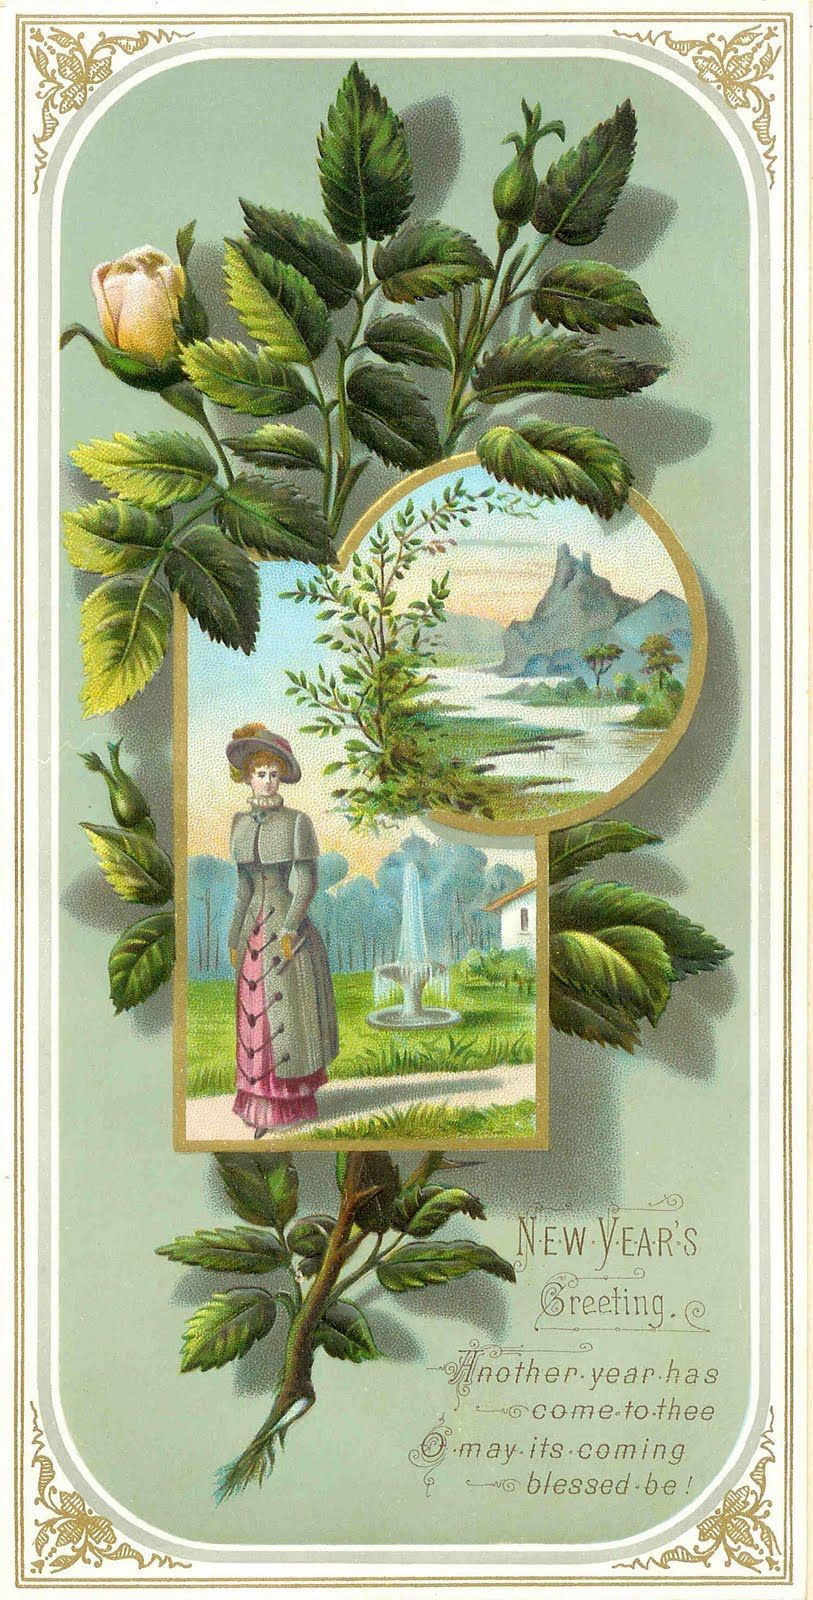 Pin By Kathy Moore On Ephemera Vintage Happy New Year Vintage Cards New Year Greeting Cards